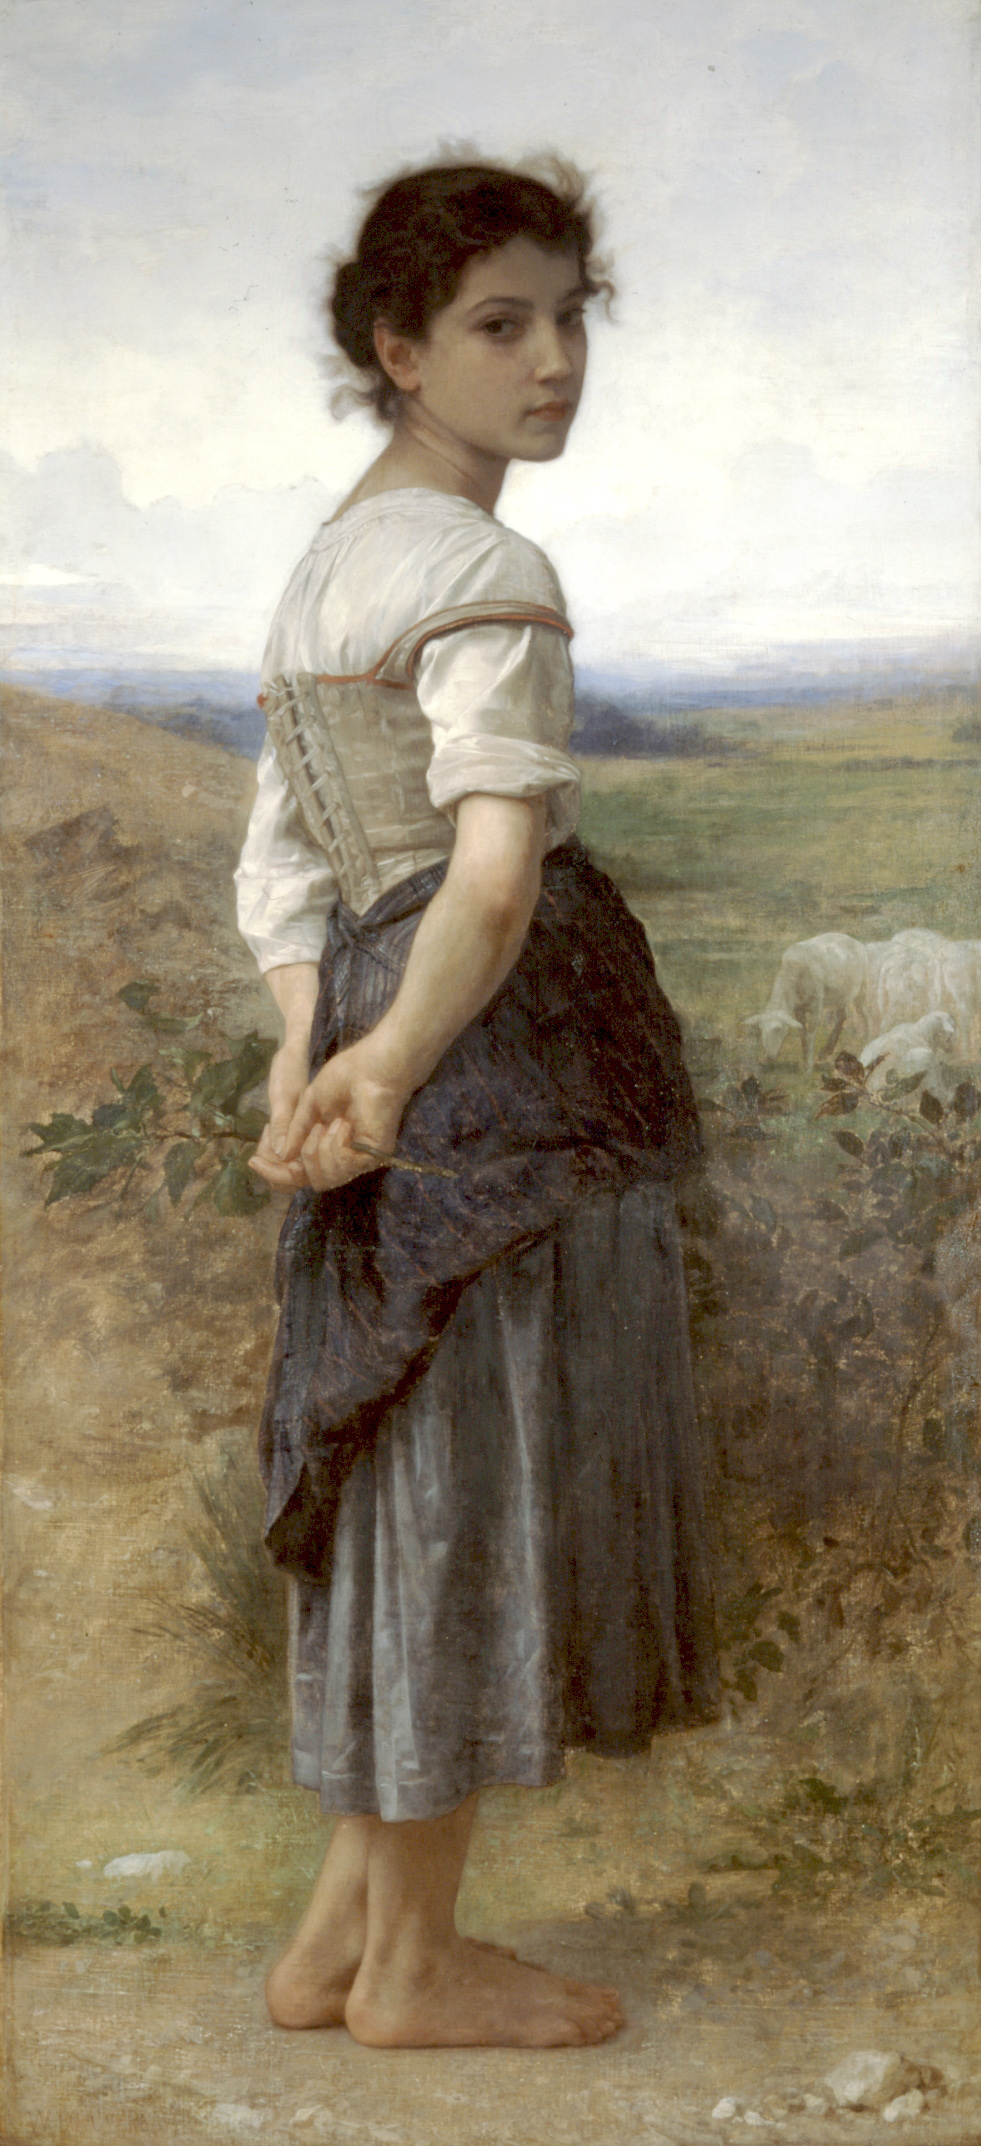 """File:William-Adolphe Bouguereau (1825-1905) - The Young Shepherdess (1885).jpg Artist William-Adolphe Bouguereau  (1825–1905) Blue pencil.svg wikidata:Q483992 q:en:William-Adolphe Bouguereau William-Adolphe Bouguereau: The Young Shepherdess Title The Young Shepherdess Object typepainting Edit this at Wikidata Genrepastoral Edit this at Wikidata Date1885 Mediumoil on canvas mounted on board DimensionsHeight: 62 in (157.4 cm); Width: 28.5 in (72.3 cm) Collection San Diego Museum of Art  Blue pencil.svg wikidata:Q1368166 Accession number 1968:82 Exhibition history Bouguereau & America Edit this at Wikidata Notesgiven by Mr. and Mrs. Edwin S. Larsen Referencesdescribed at URL: http://collection.sdmart.org/Obj2298 Edit this at Wikidata Source/PhotographerUnknown source Permission (Reusing this file) This is a faithful photographic reproduction of a two-dimensional, public domain work of art. The work of art itself is in the public domain for the following reason: Public domain This work is in the public domain in its country of origin and other countries and areas where the copyright term is the author's life plus 100 years or fewer.  This work is in the public domain in the United States because it was published (or registered with the U.S. Copyright Office) before January 1, 1925.  This file has been identified as being free of known restrictions under copyright law, including all related and neighboring rights. The official position taken by the Wikimedia Foundation is that """"faithful reproductions of two-dimensional public domain works of art are public domain"""". This photographic reproduction is therefore also considered to be in the public domain in the United States. In other jurisdictions, re-use of this content may be restricted; see Reuse of PD-Art photographs for details."""